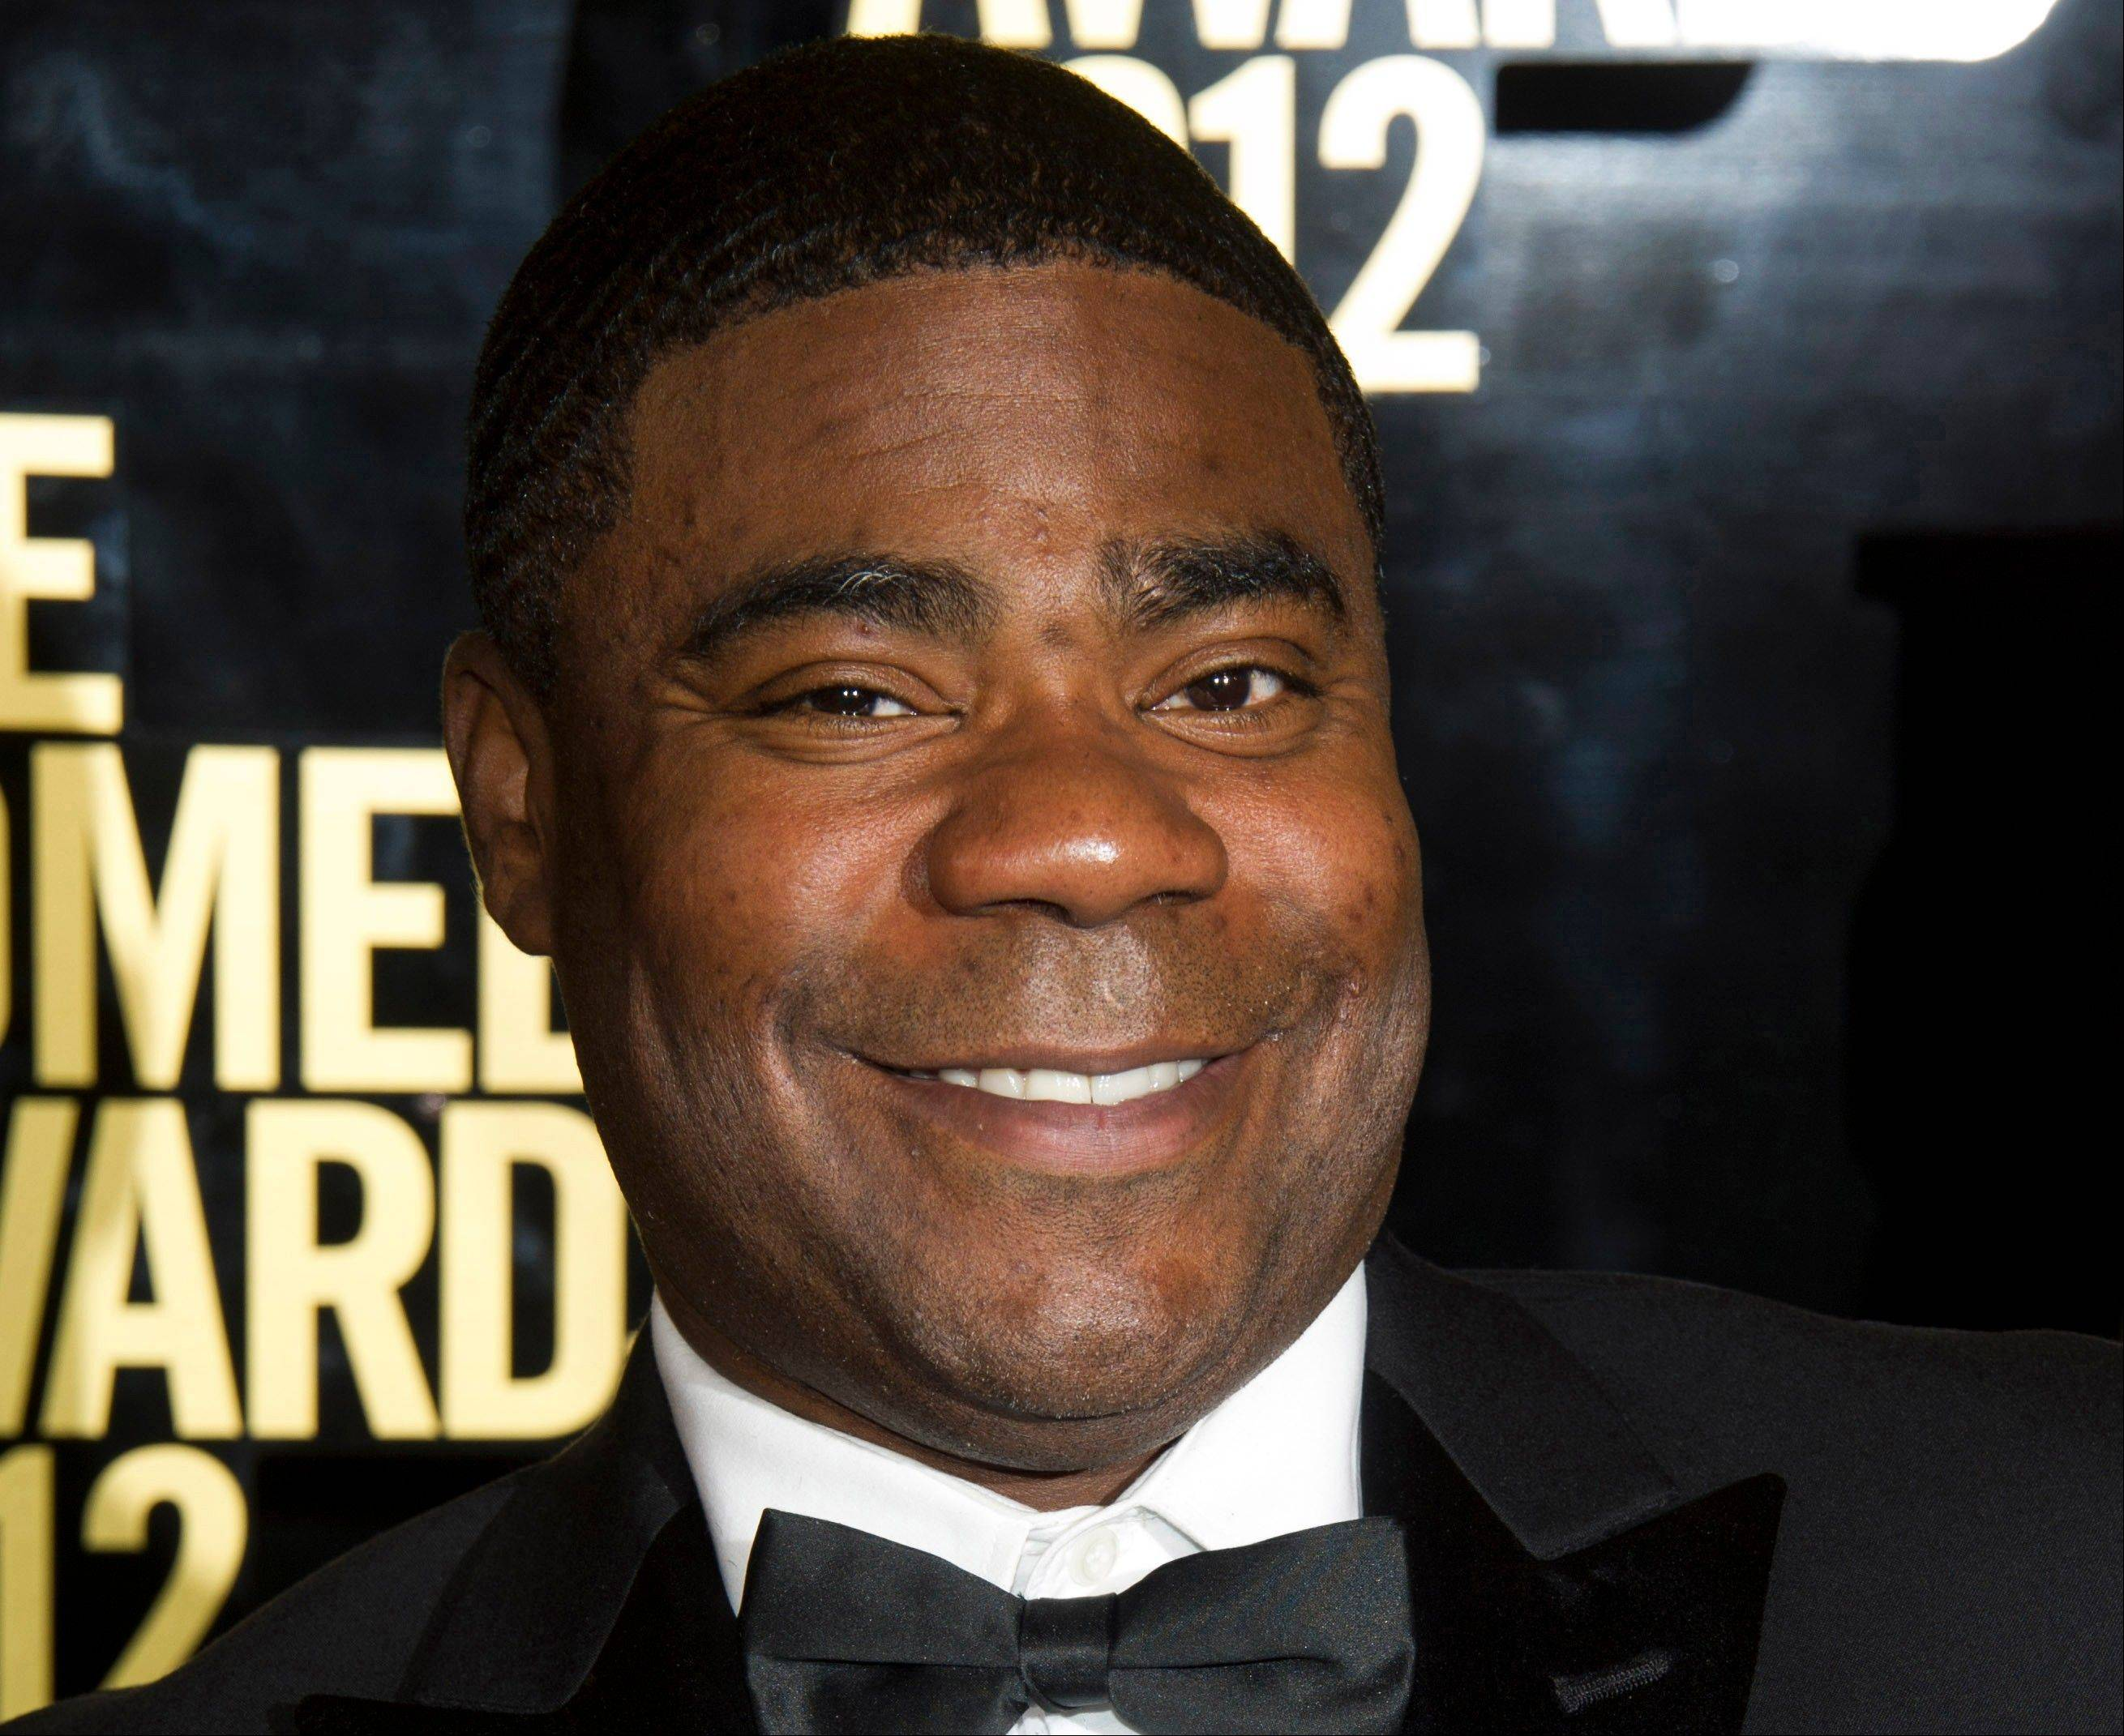 Comedian Tracy Morgan will host the Billboard Music Awards show in Las Vegas.